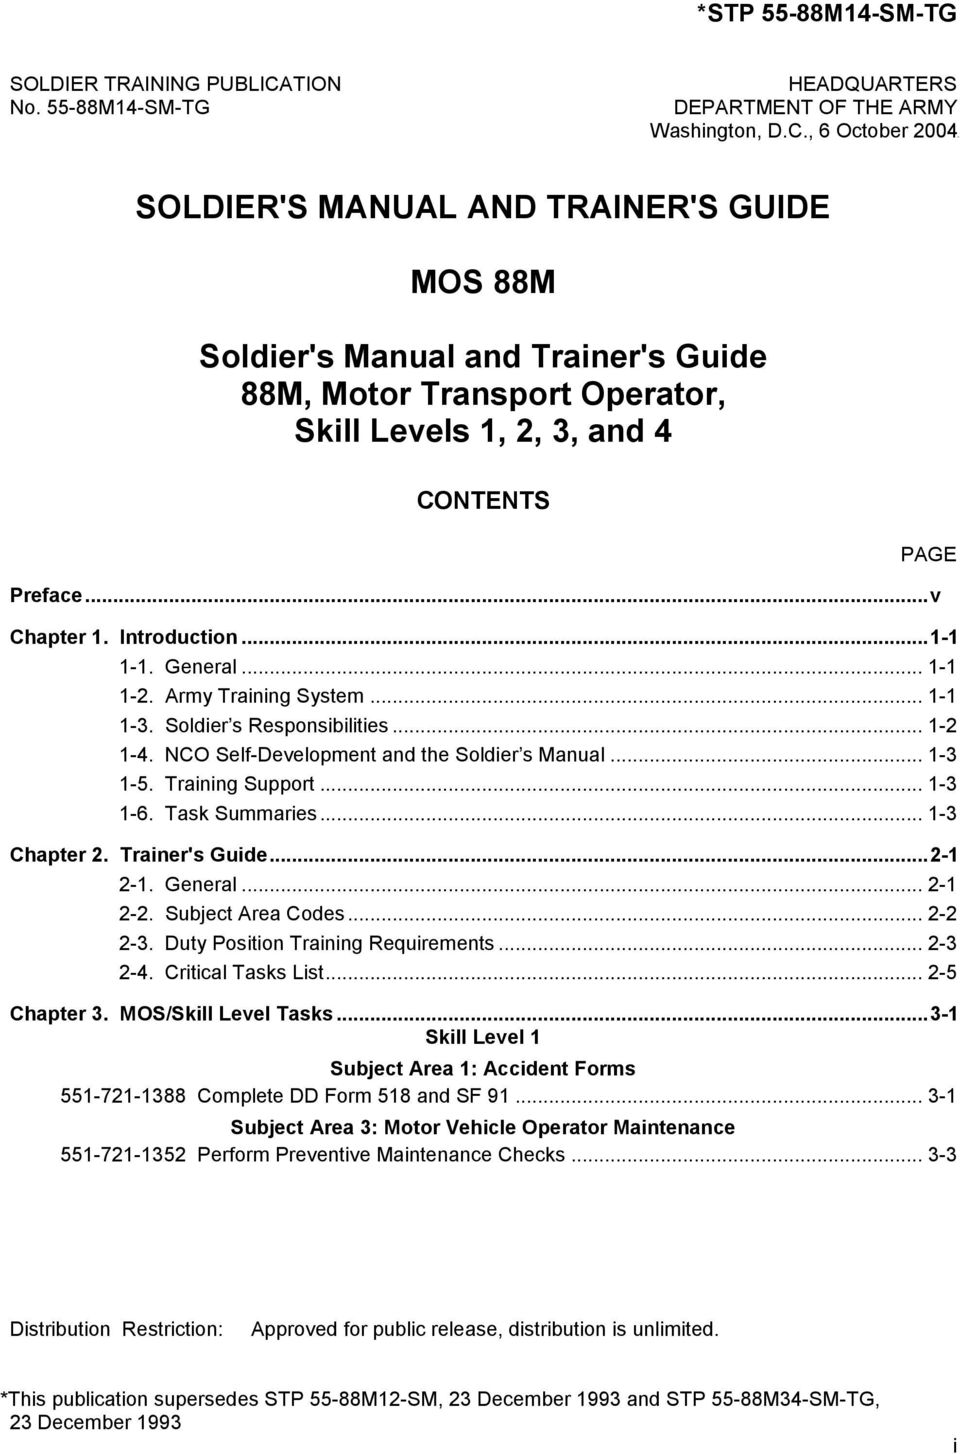 stp operation and maintenance manual